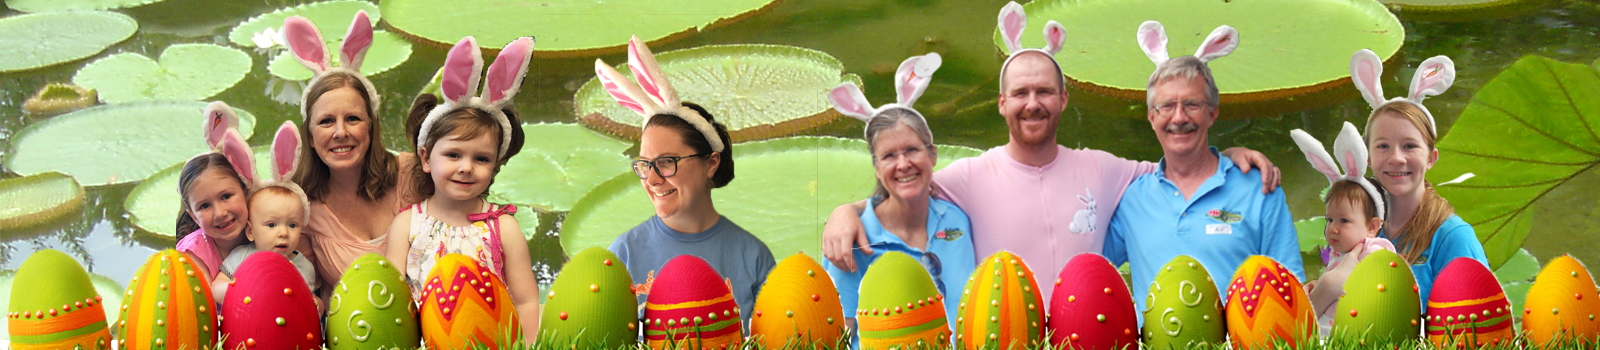 Easter Egg Hunt April 20 @9am (Don't forget we are Closed on Easter Sunday)